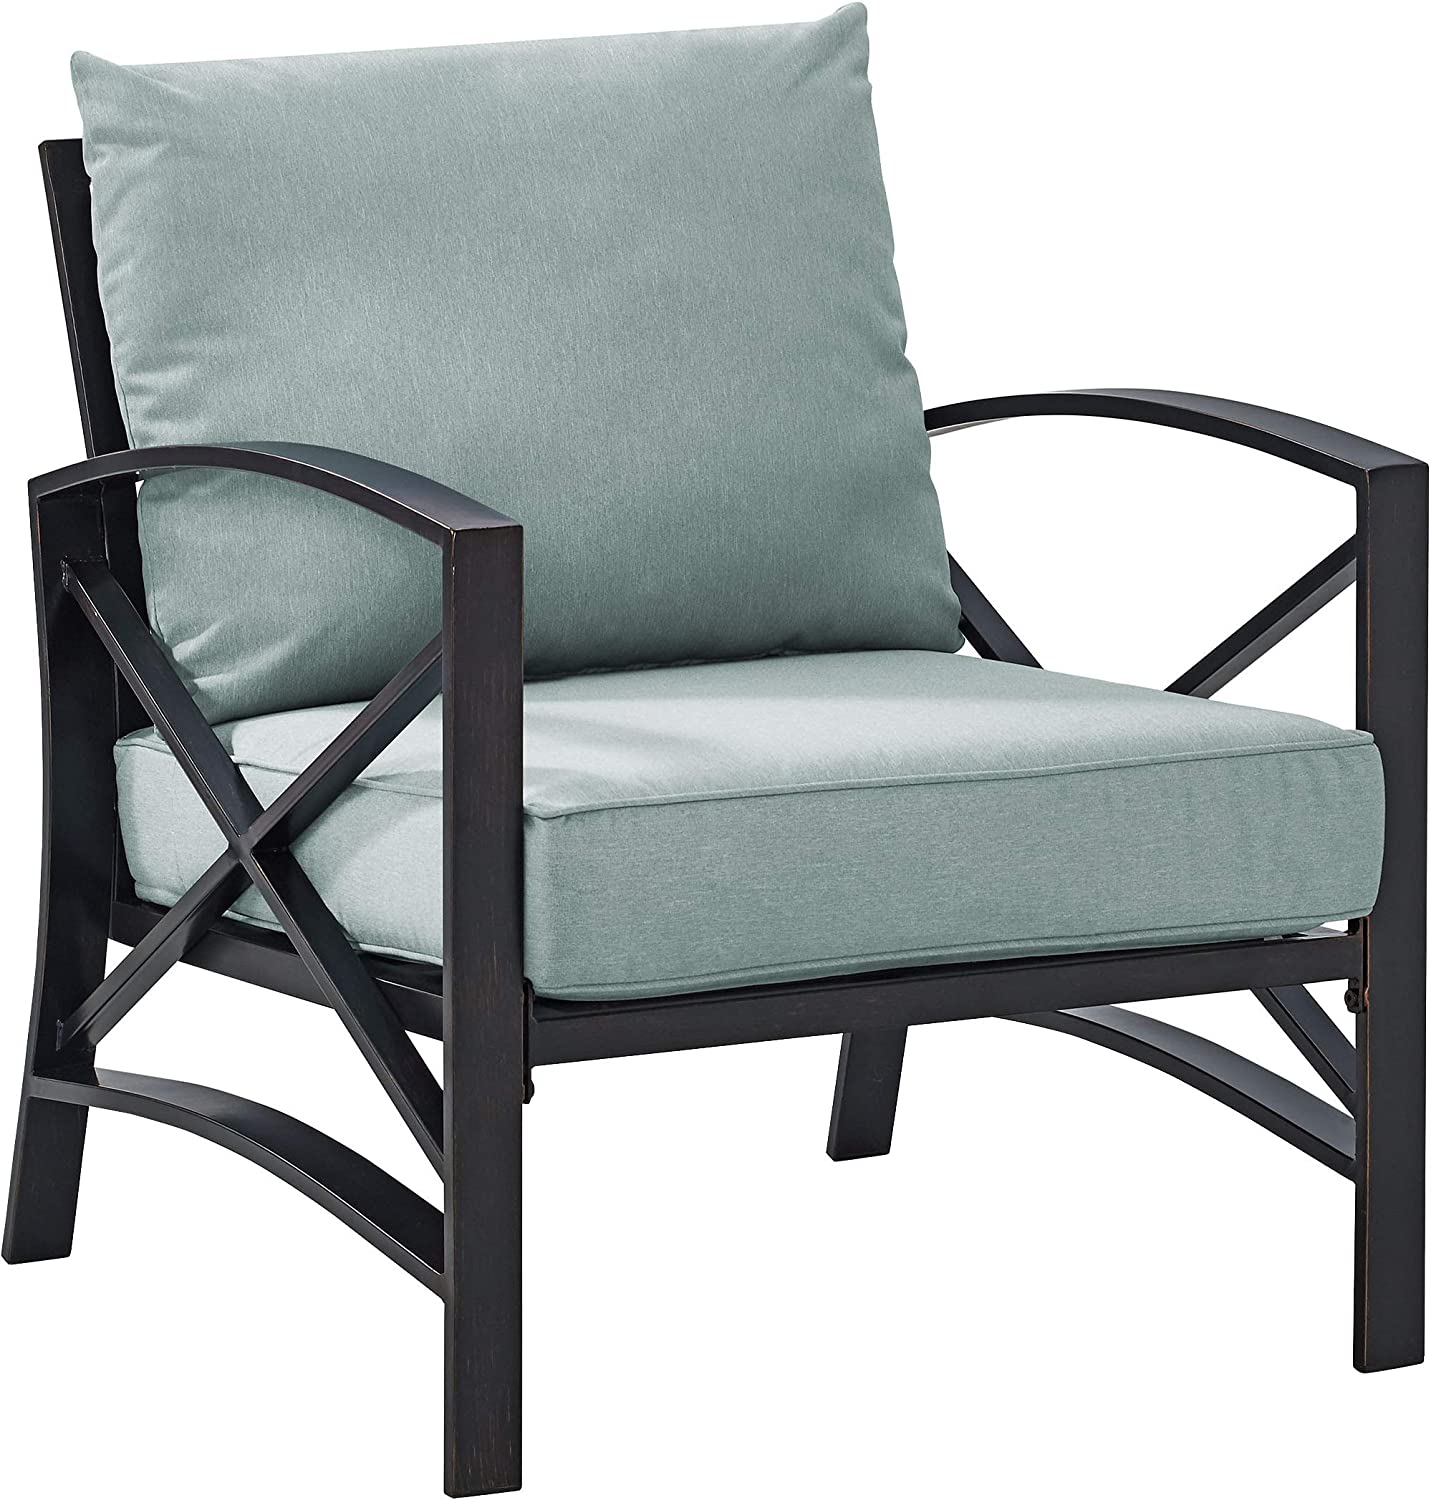 Crosley Furniture KO60007BZ-MI Kaplan Outdoor Metal Arm Chair, Oiled Bronze with Mist Cushions